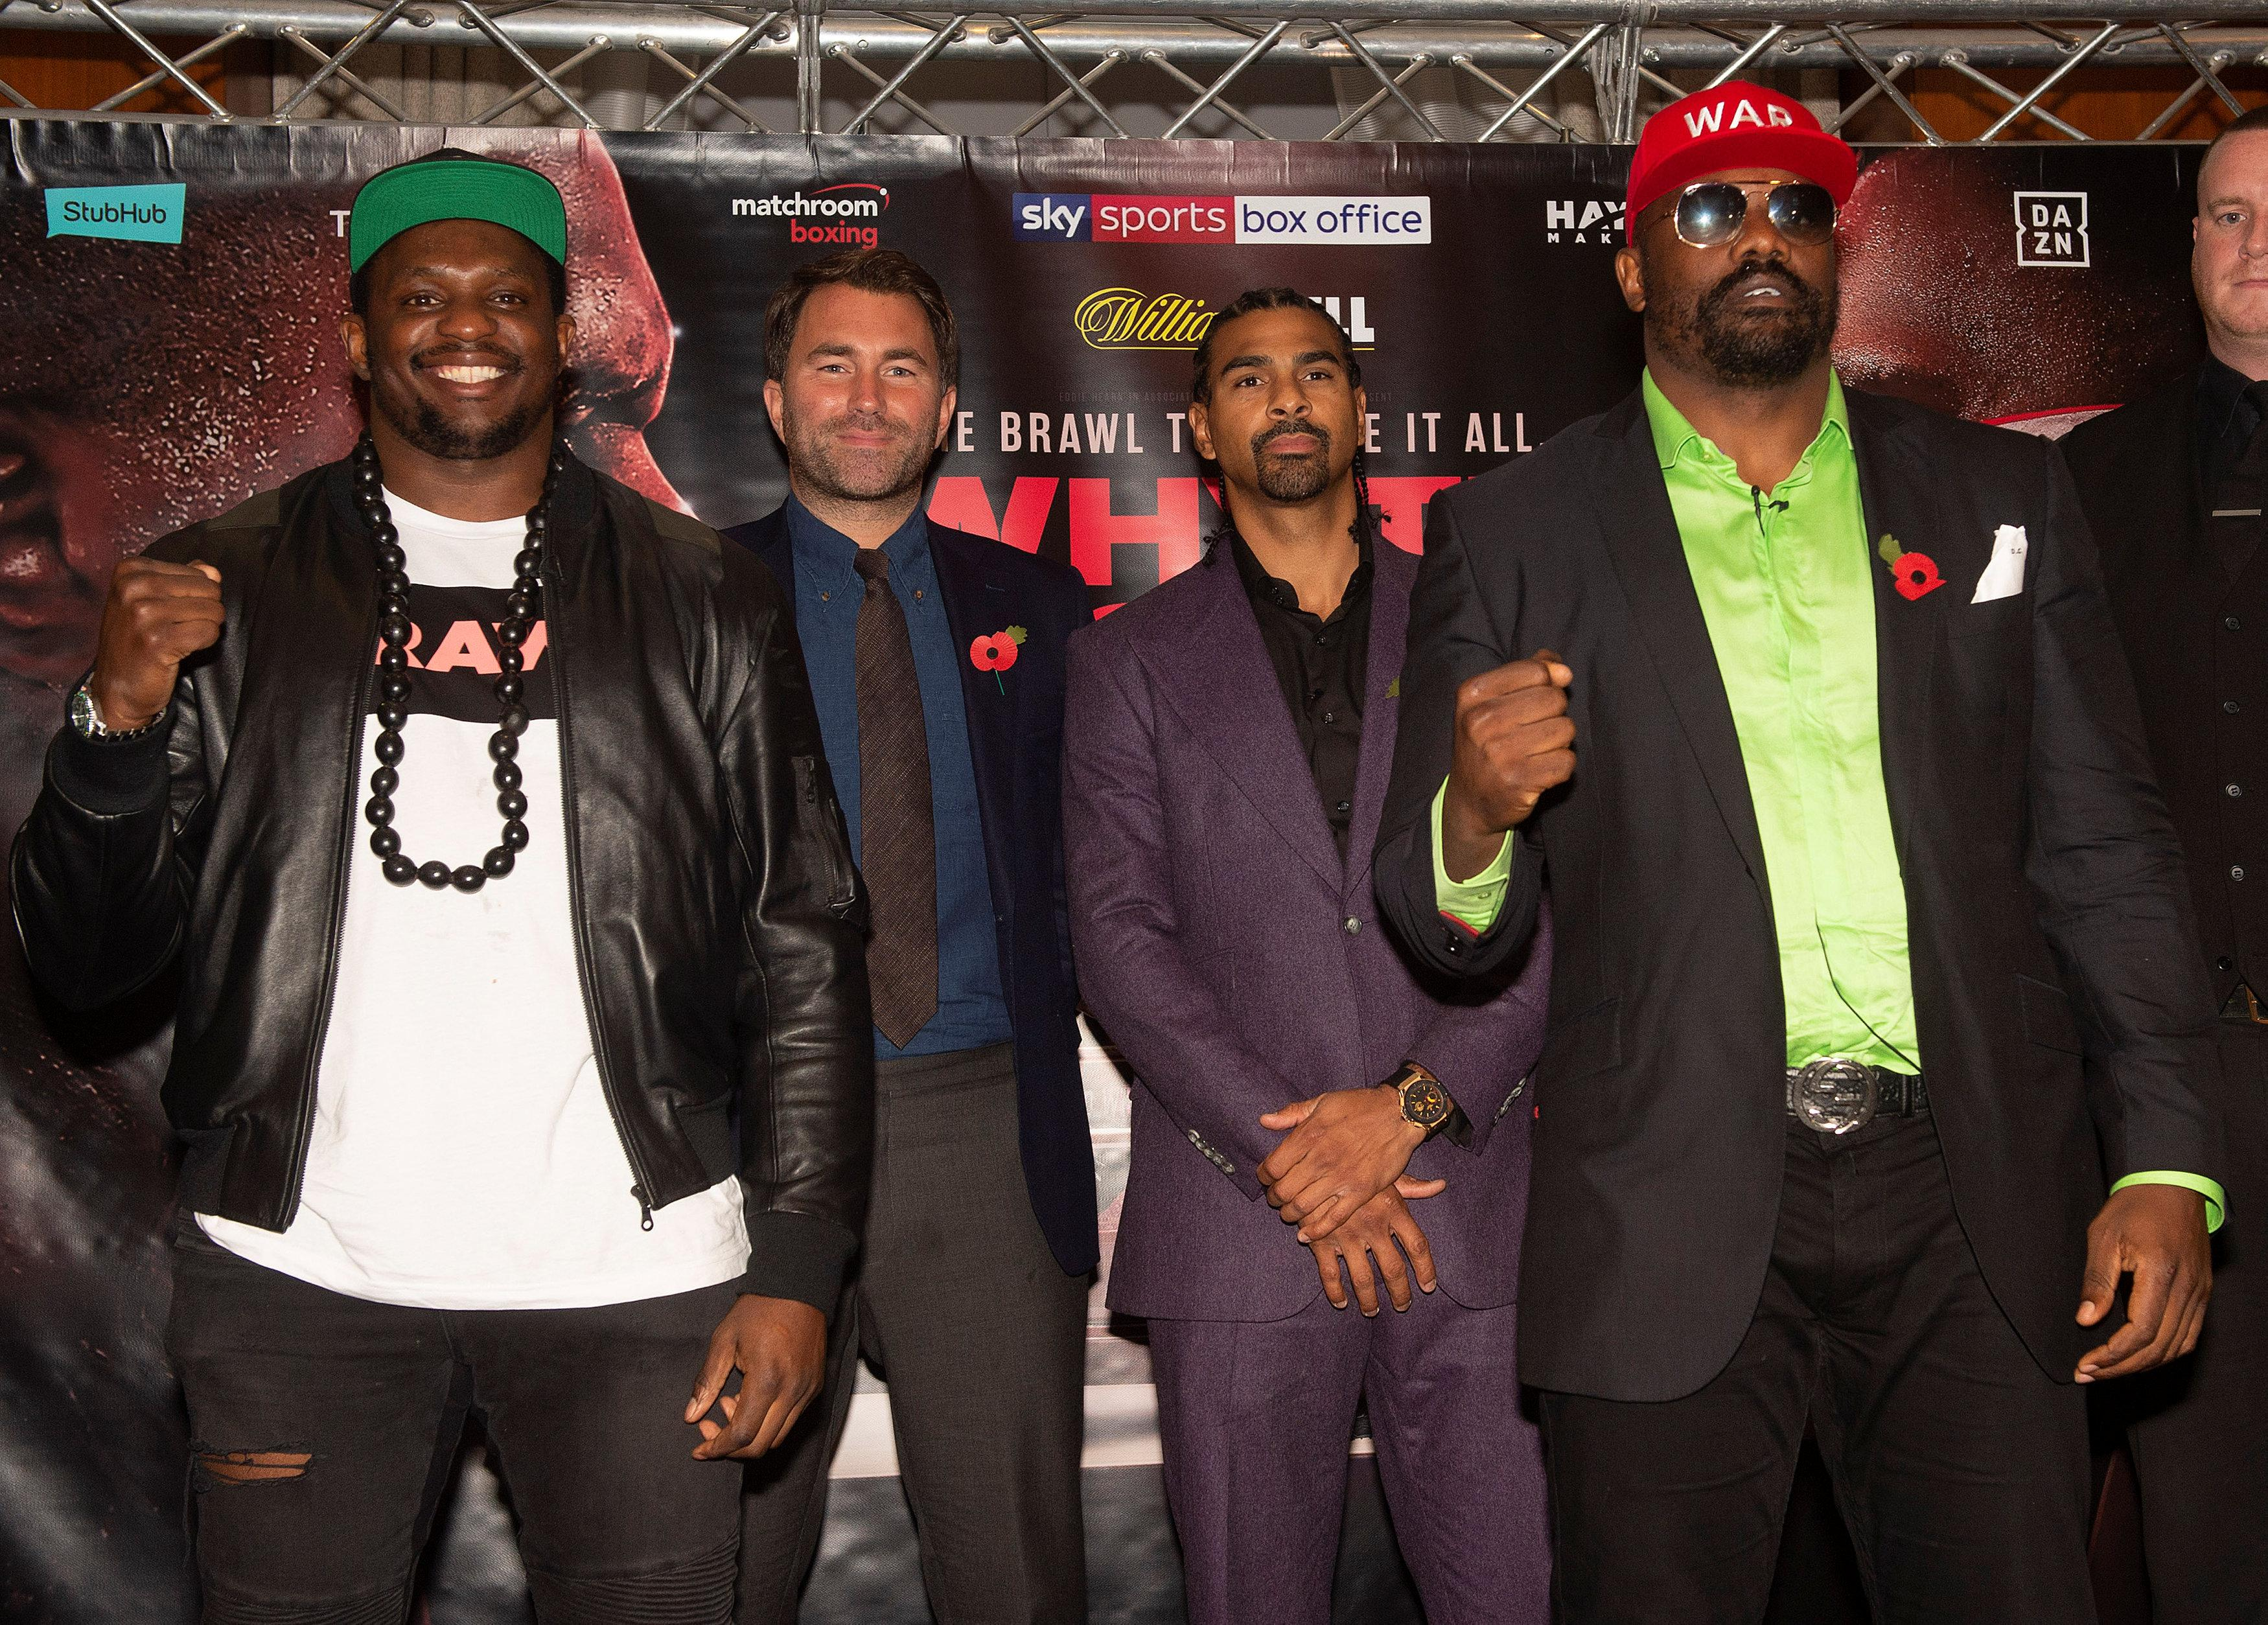 Whyte and Chisora will meet in a rematch having competed in a Fight of The Year contender in December 2016